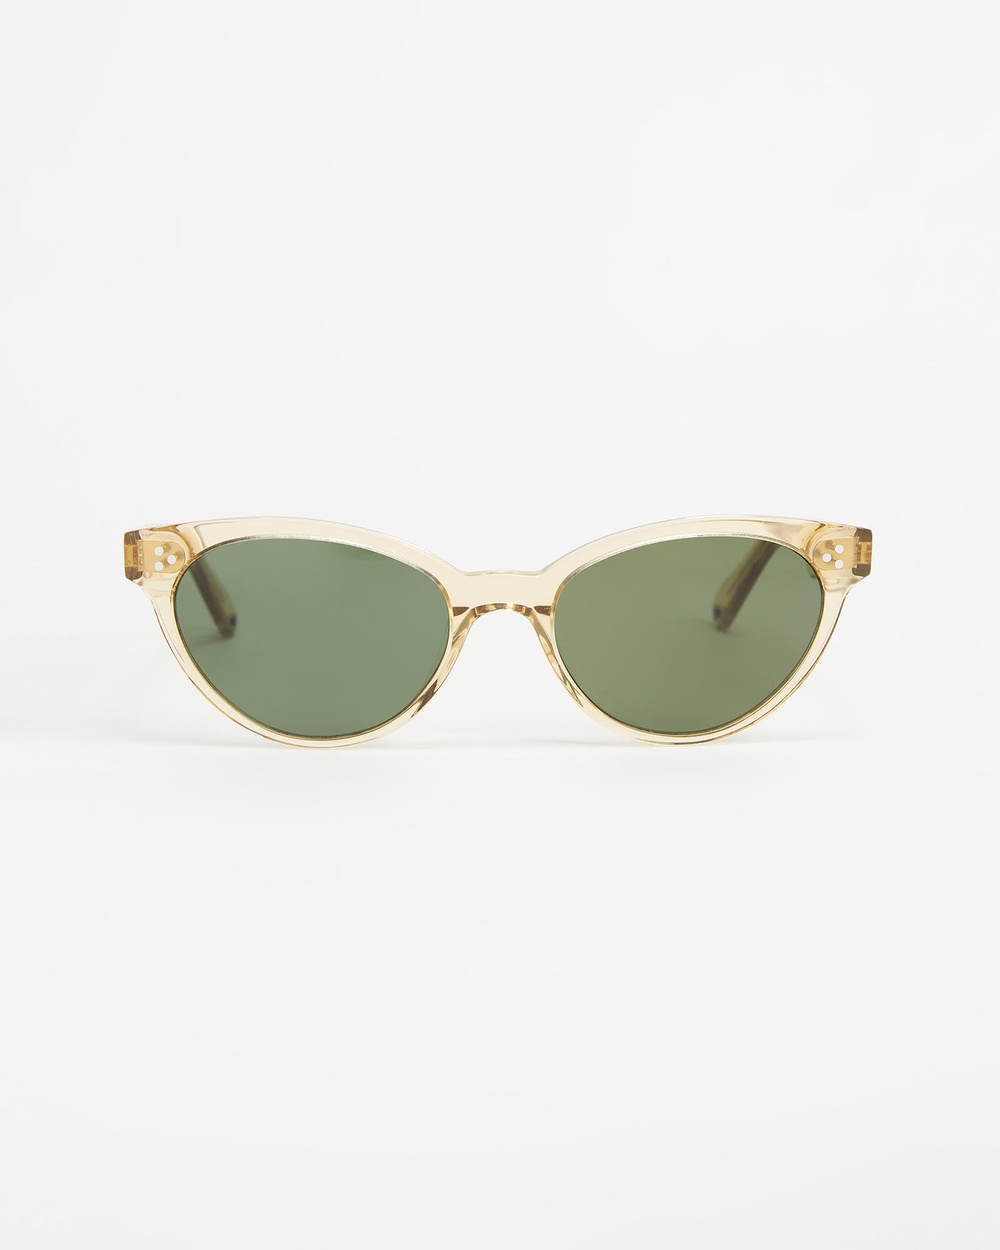 Pacifico Optical Francis Sunglasses Champagne & Green